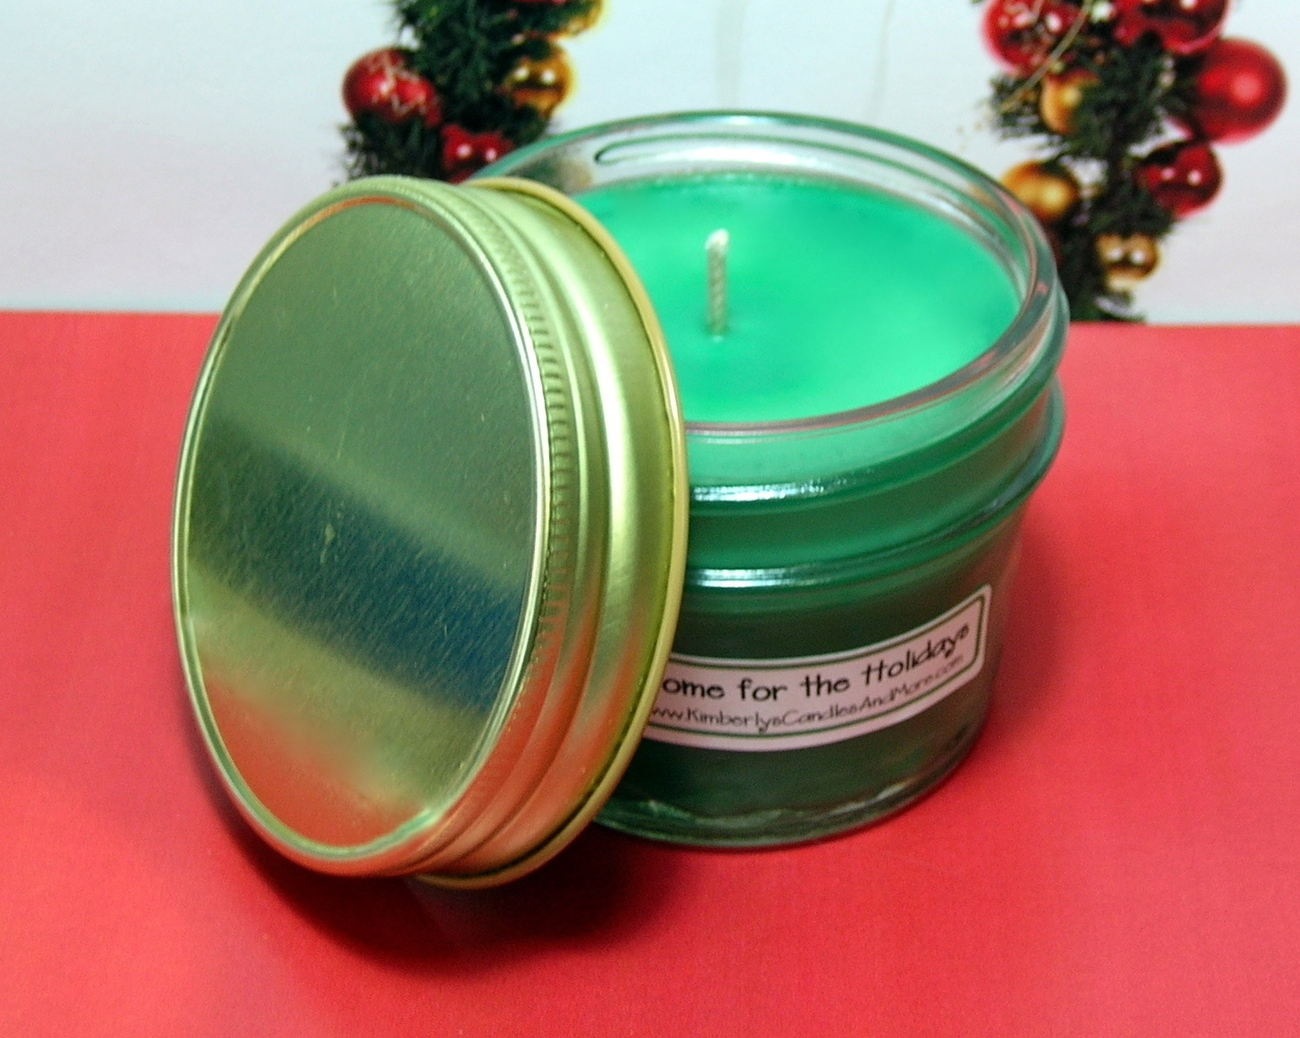 Home for the Holidays PURE SOY 4 oz. Jelly Jar Cand